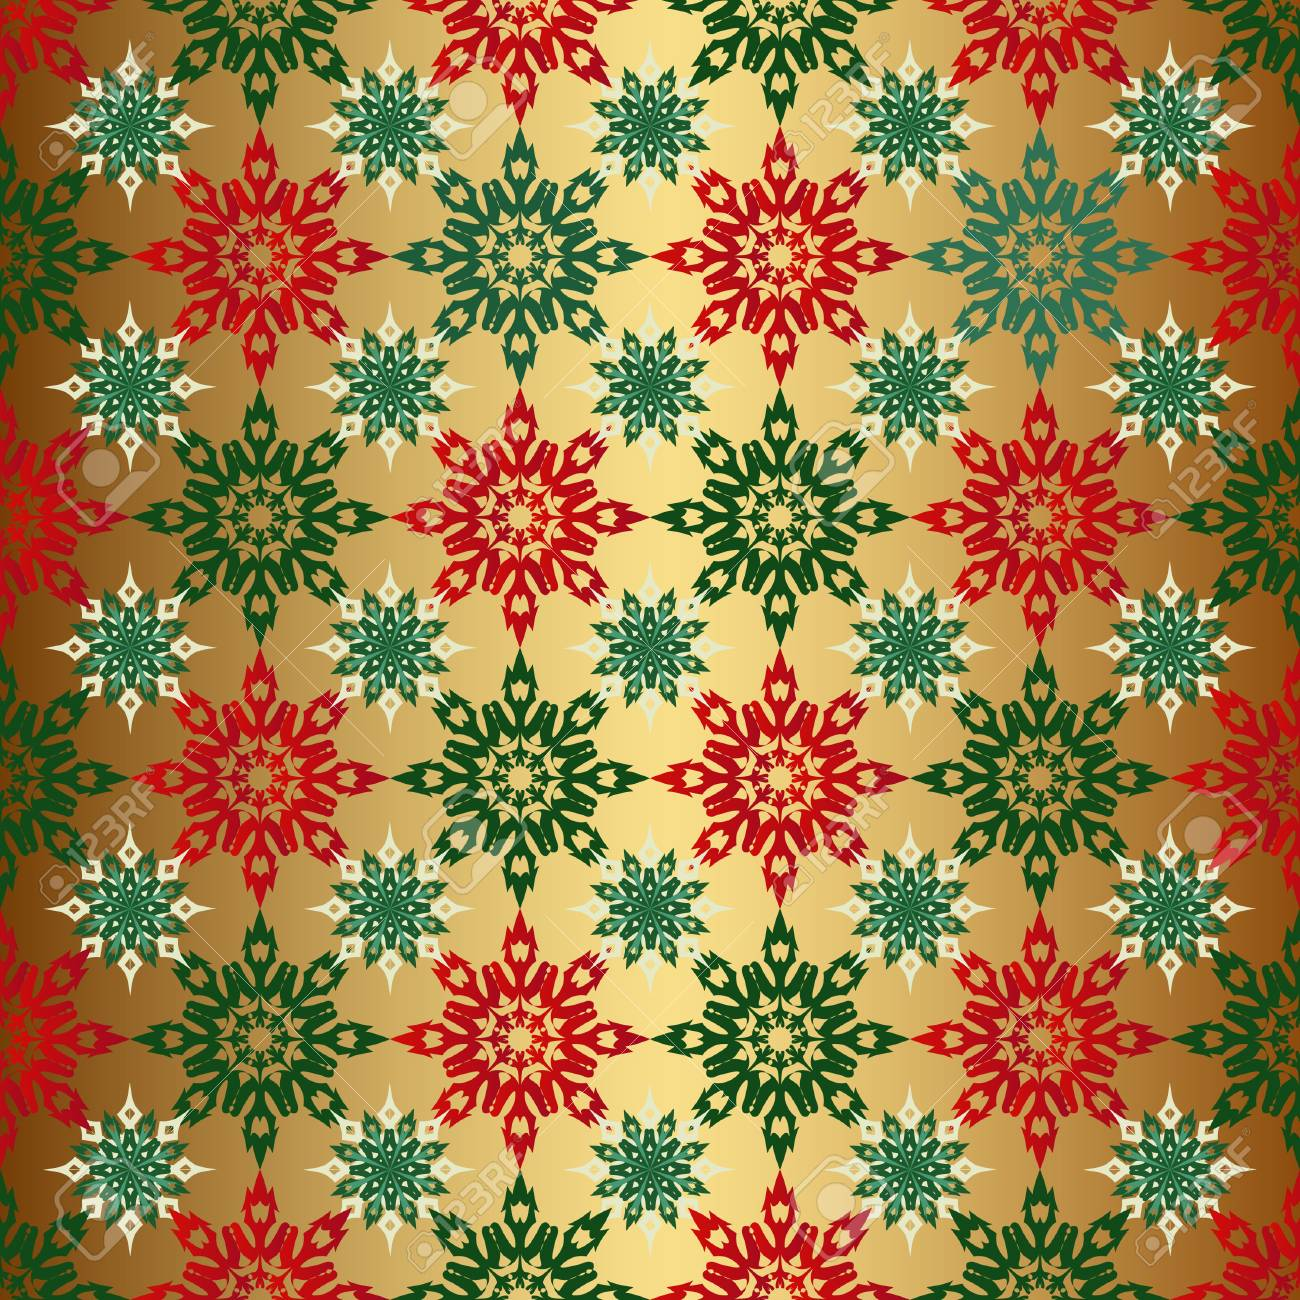 Free Download Seamless Christmas Background Gold Color With Red